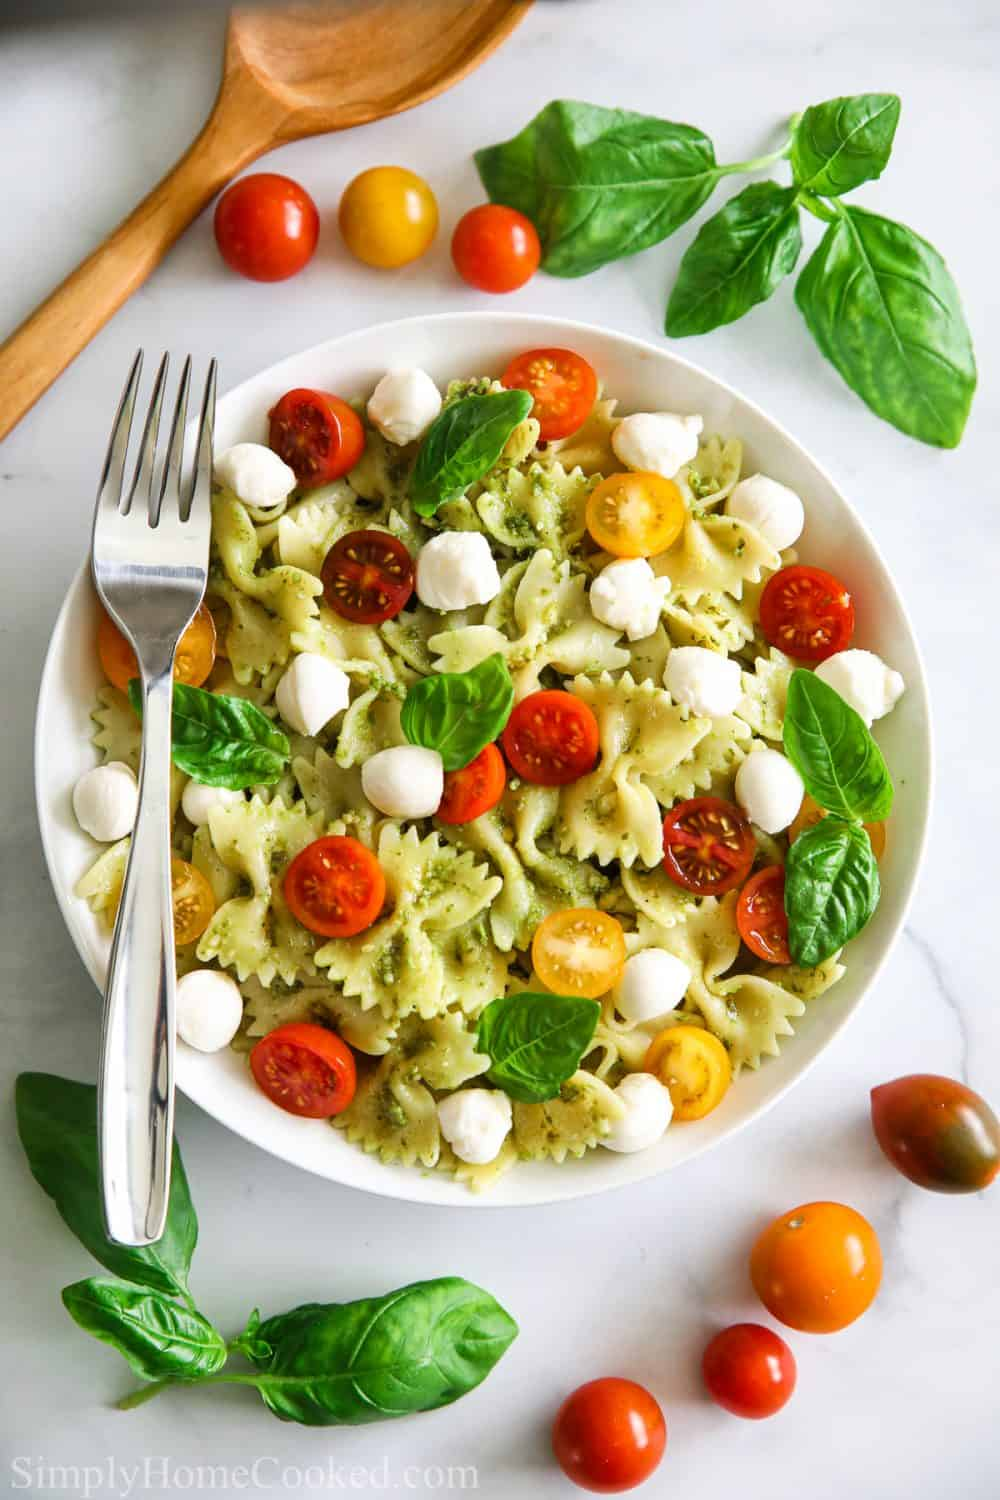 overhead shot of pesto pasta salad with basil leaves, sliced cherry tomatoes, mozzarella pearls,, and a fork laid on top